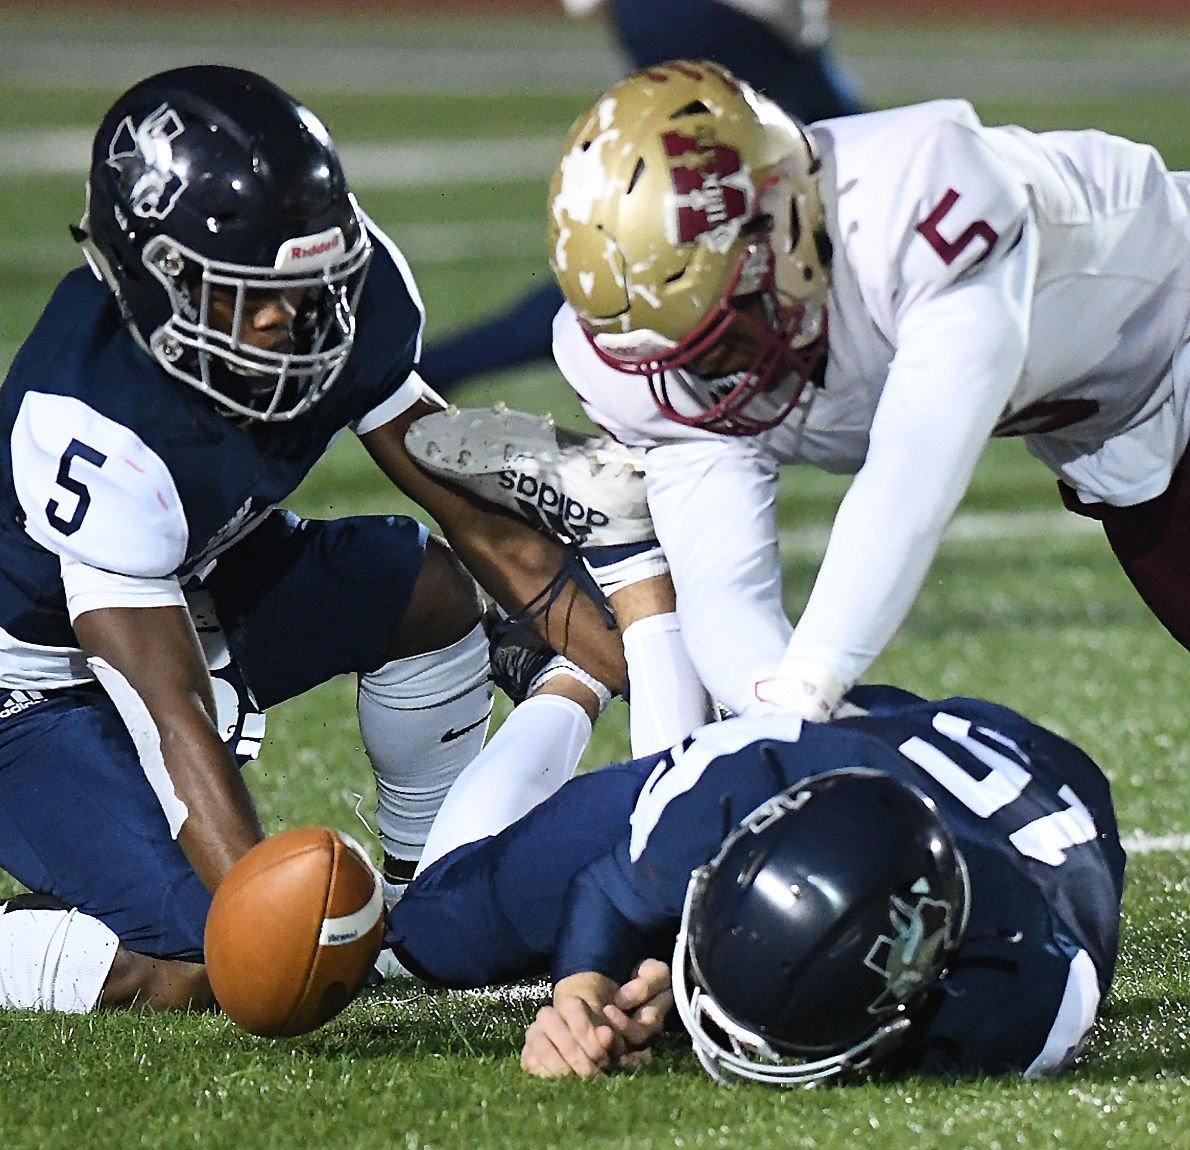 BHS vs Cy Woods Football 9.jpg